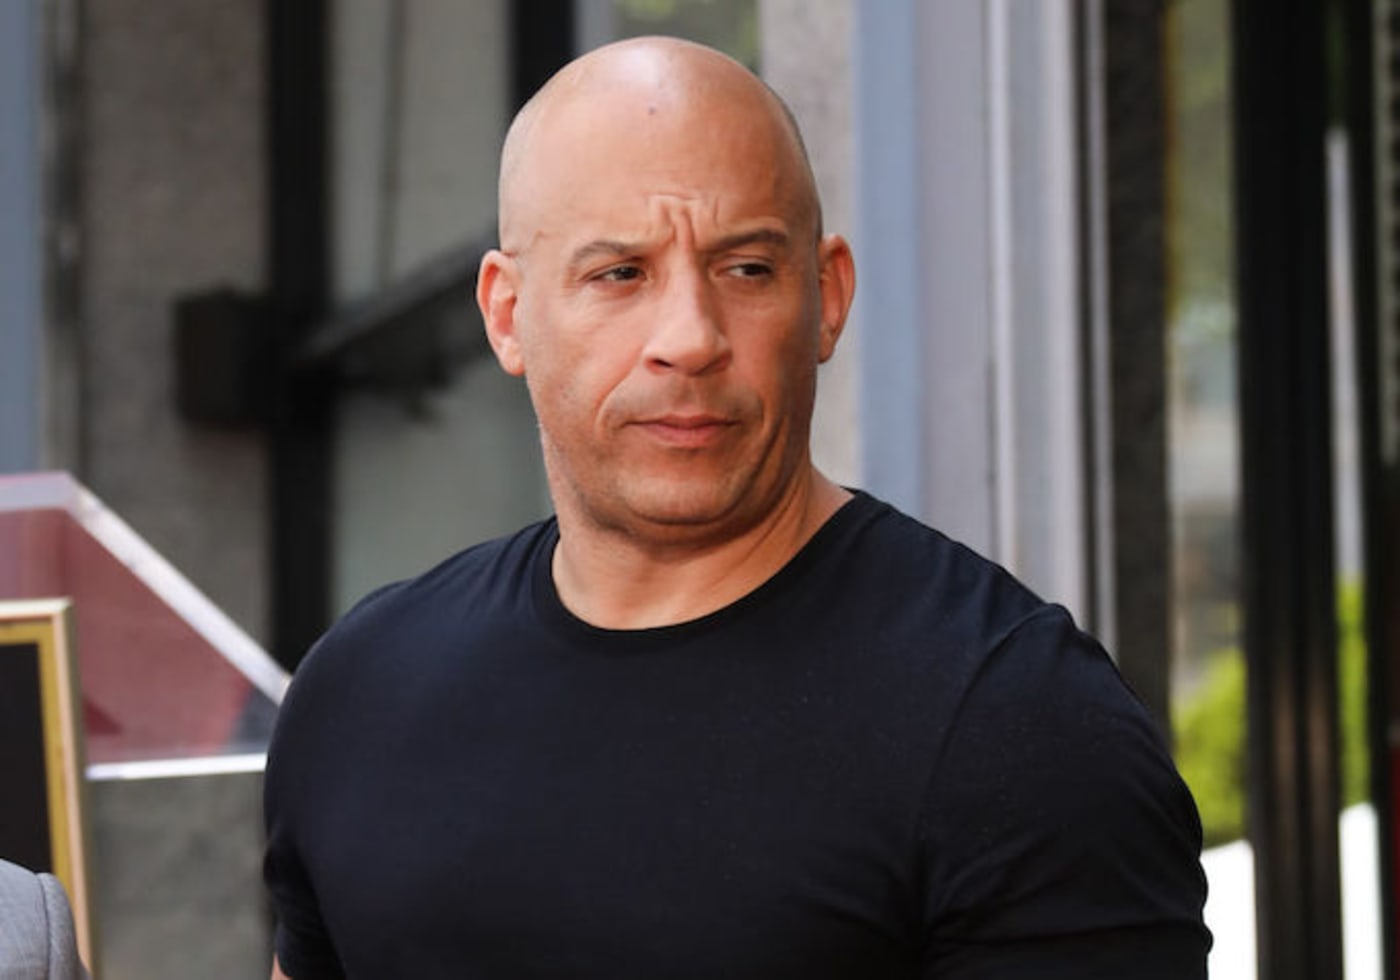 This is a picture of Vin Diesel.